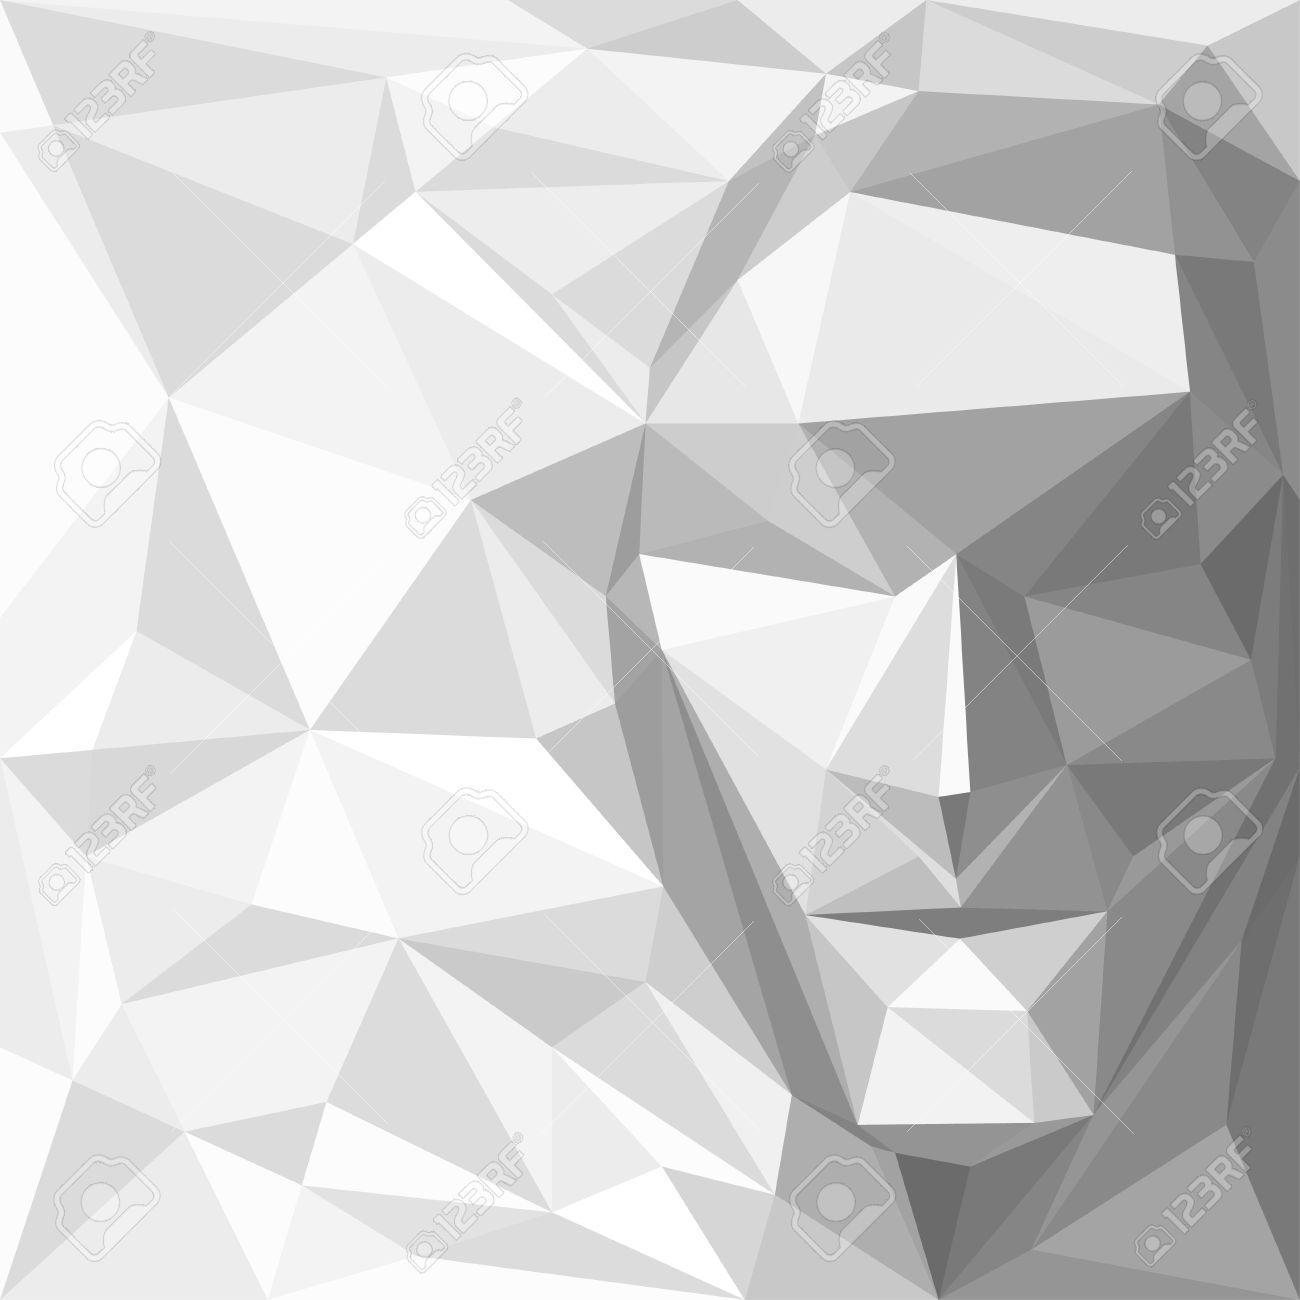 Abstract Background with Face Made of Geometric Shapes - 24826286